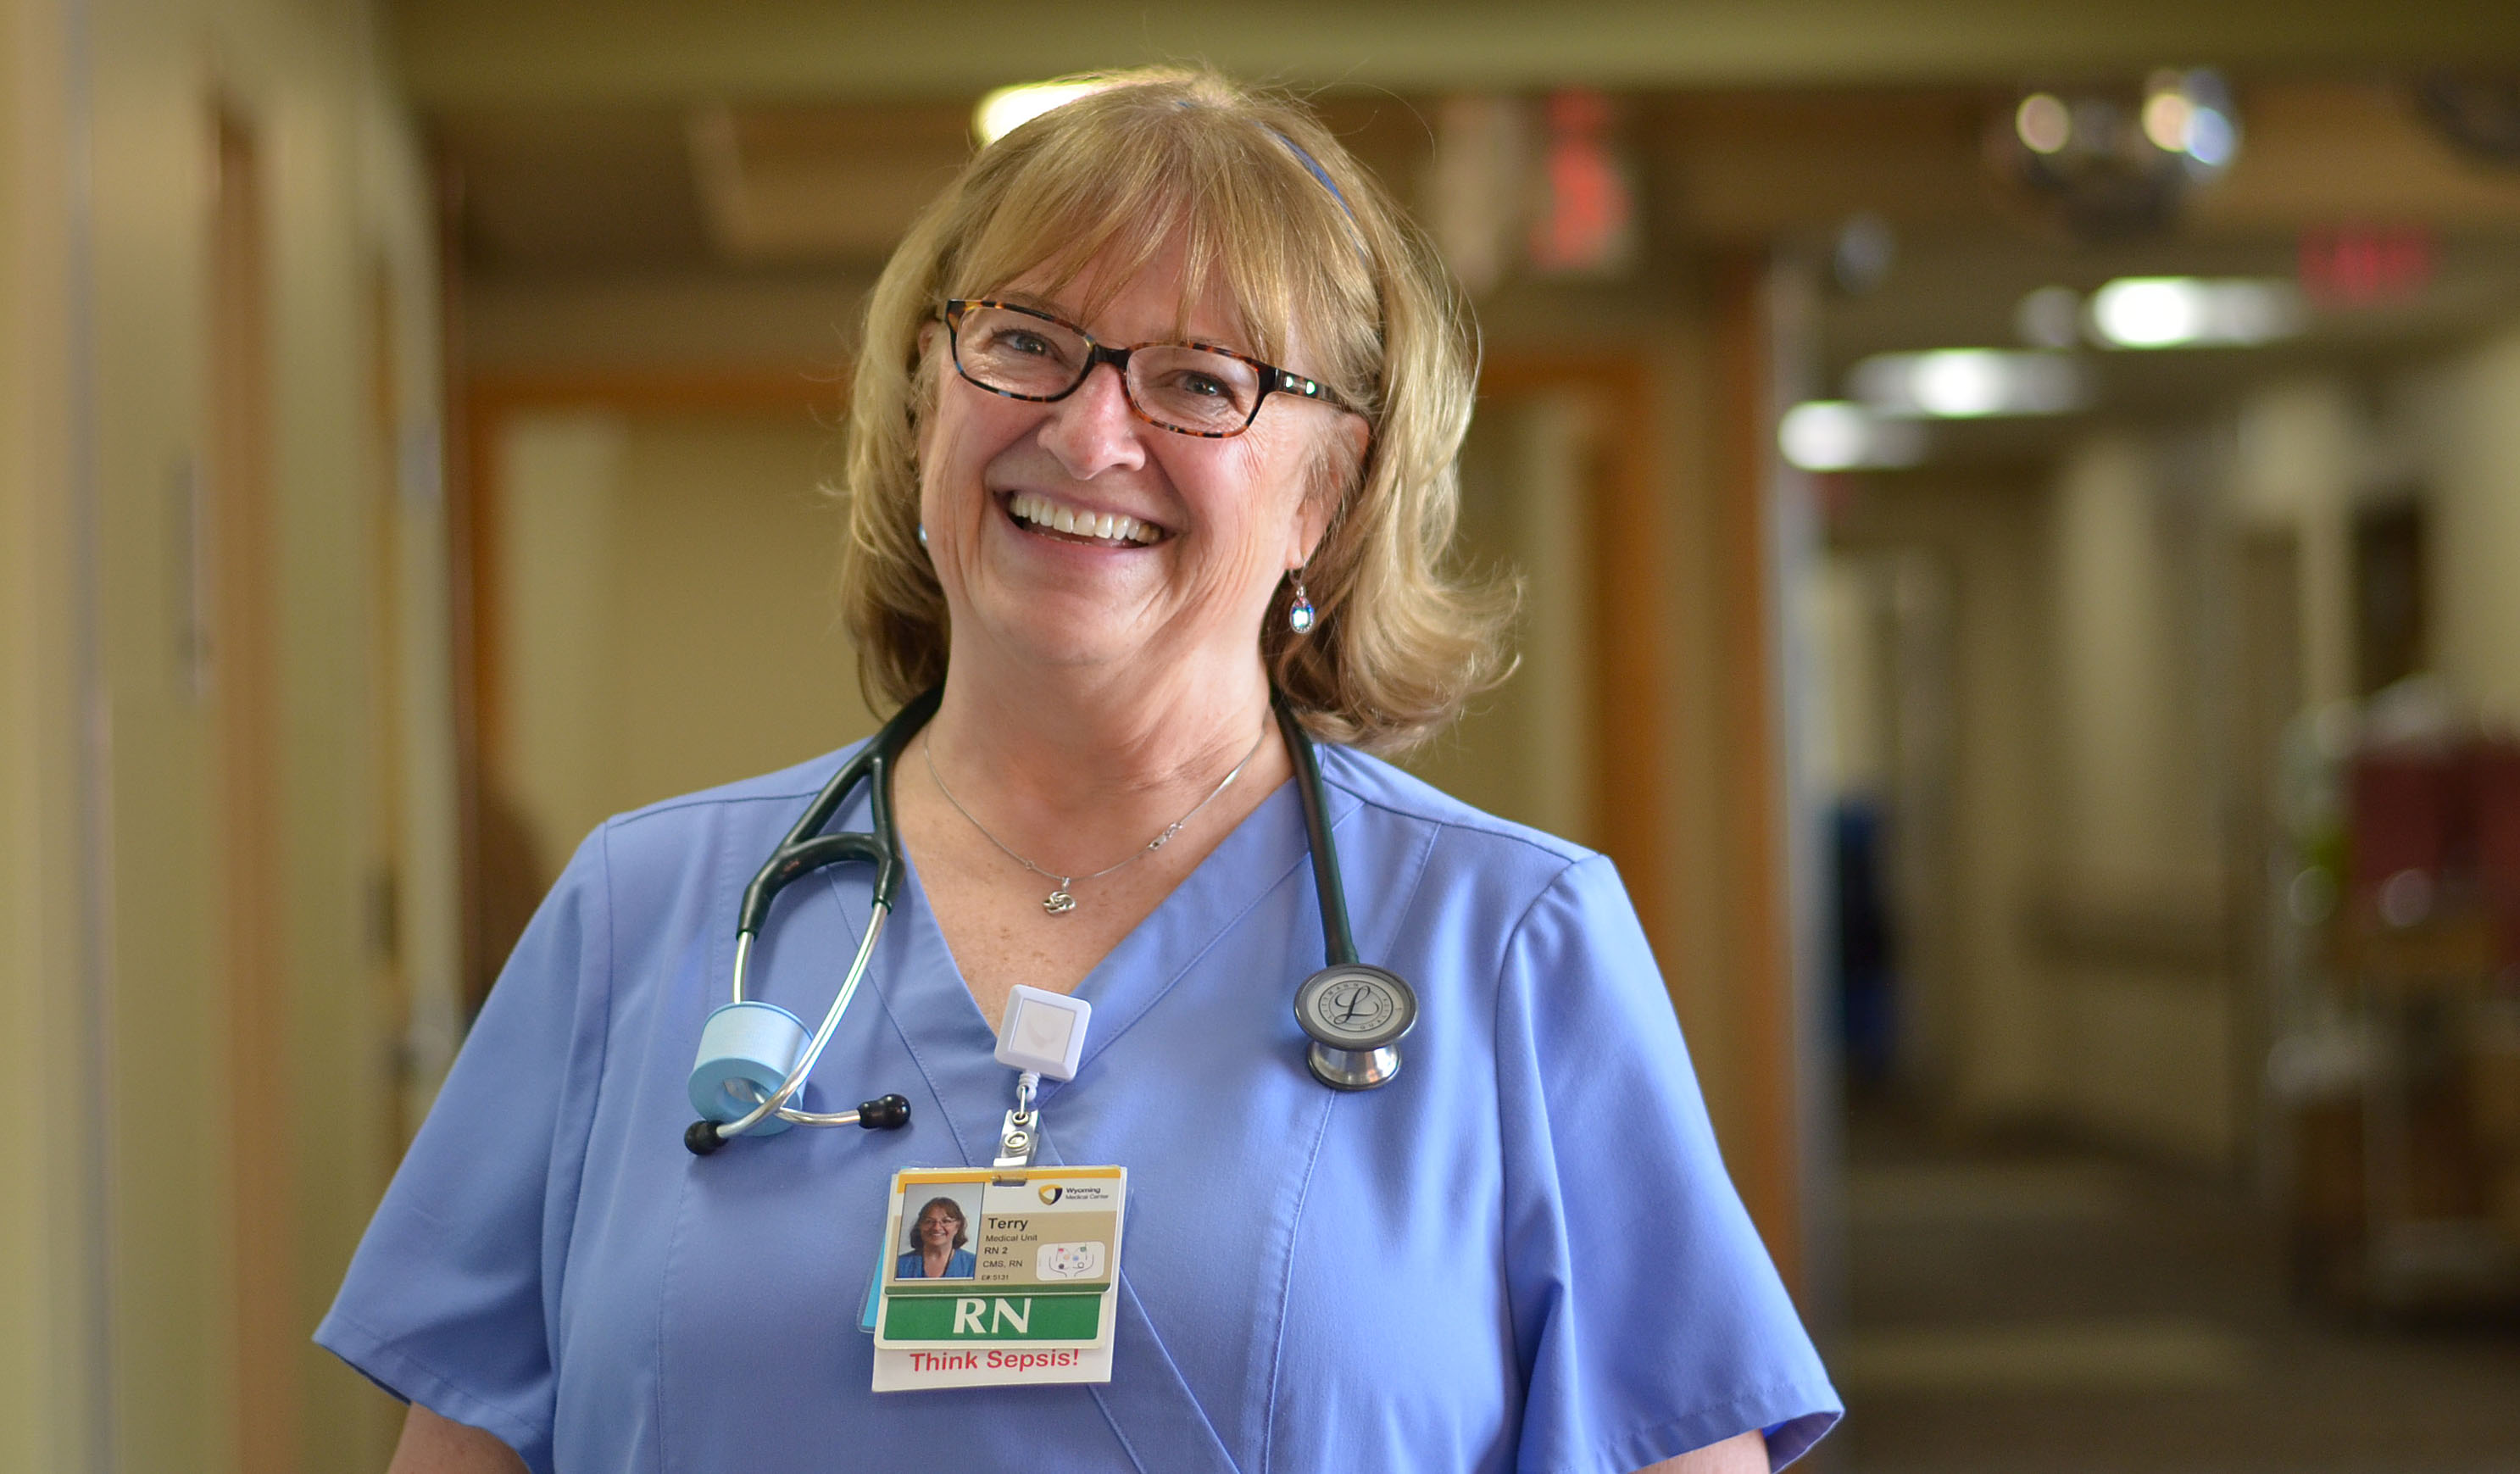 Meet our 2016 Employee of the Year: Medical nurse Terry Brown